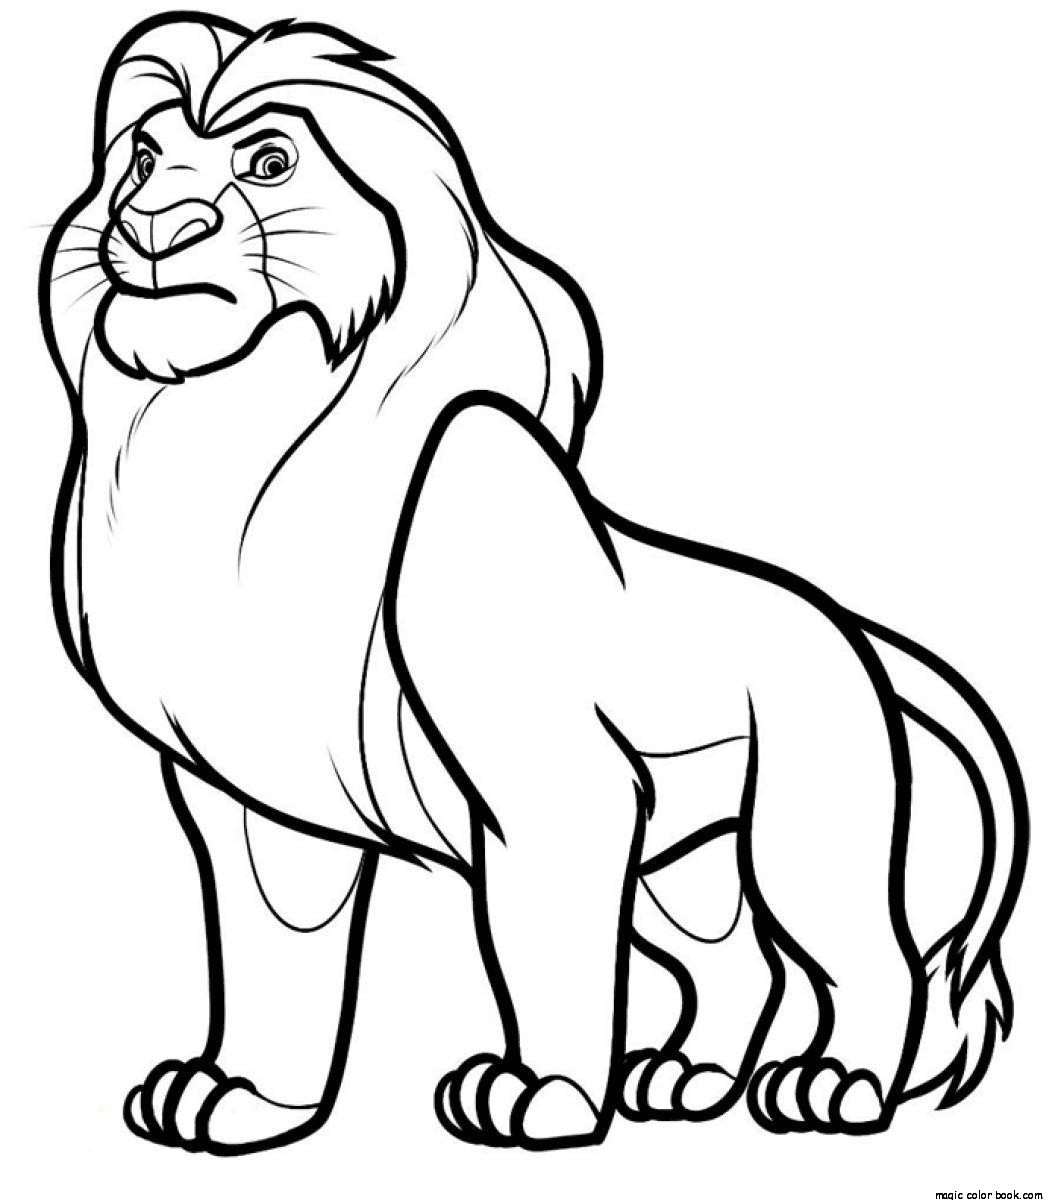 1061x1200 Mufasa Disney The Lion King Coloring Pages Online Free